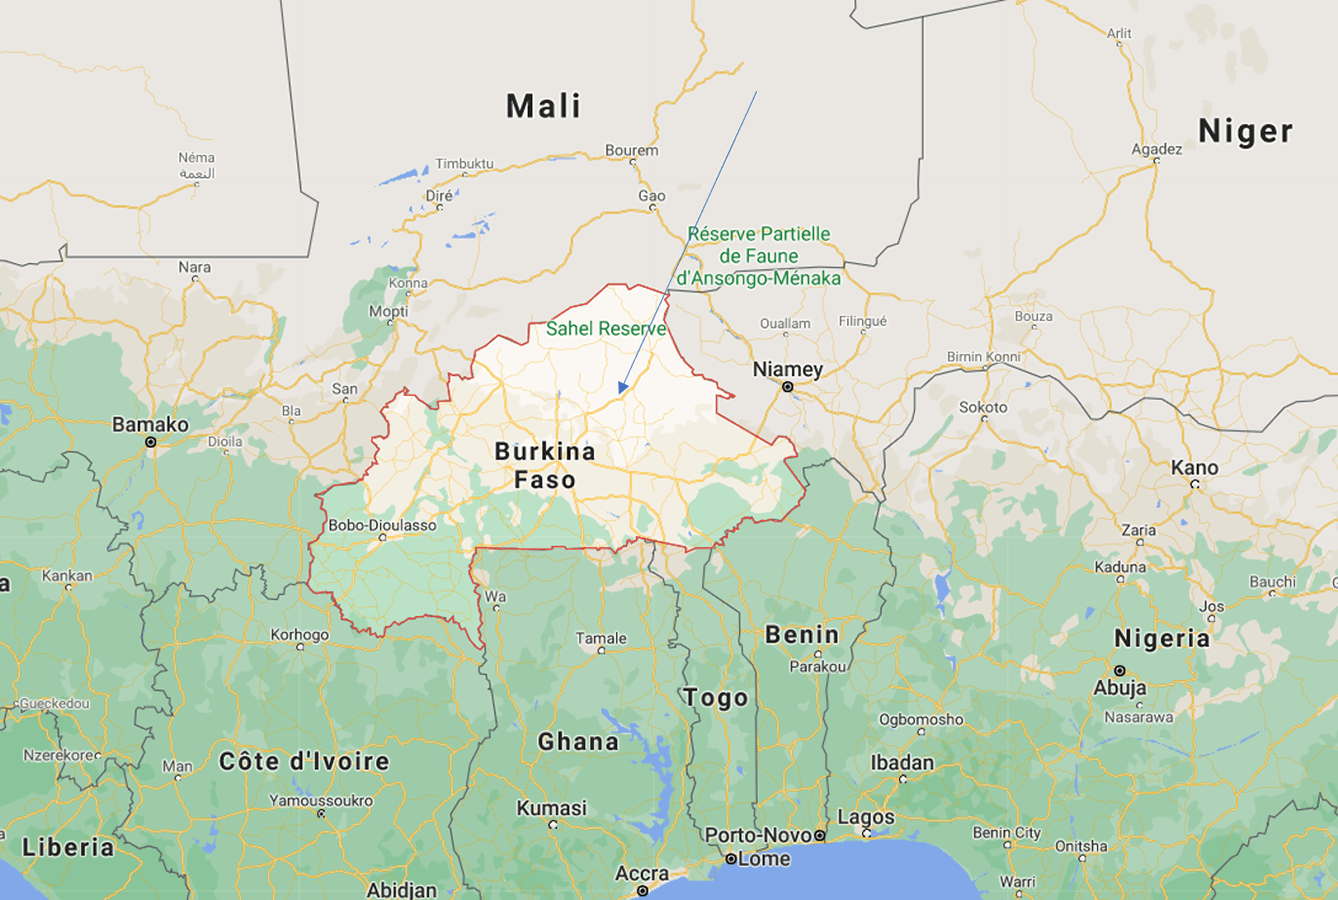 Map of West Africa, highlighting Burkina Faso